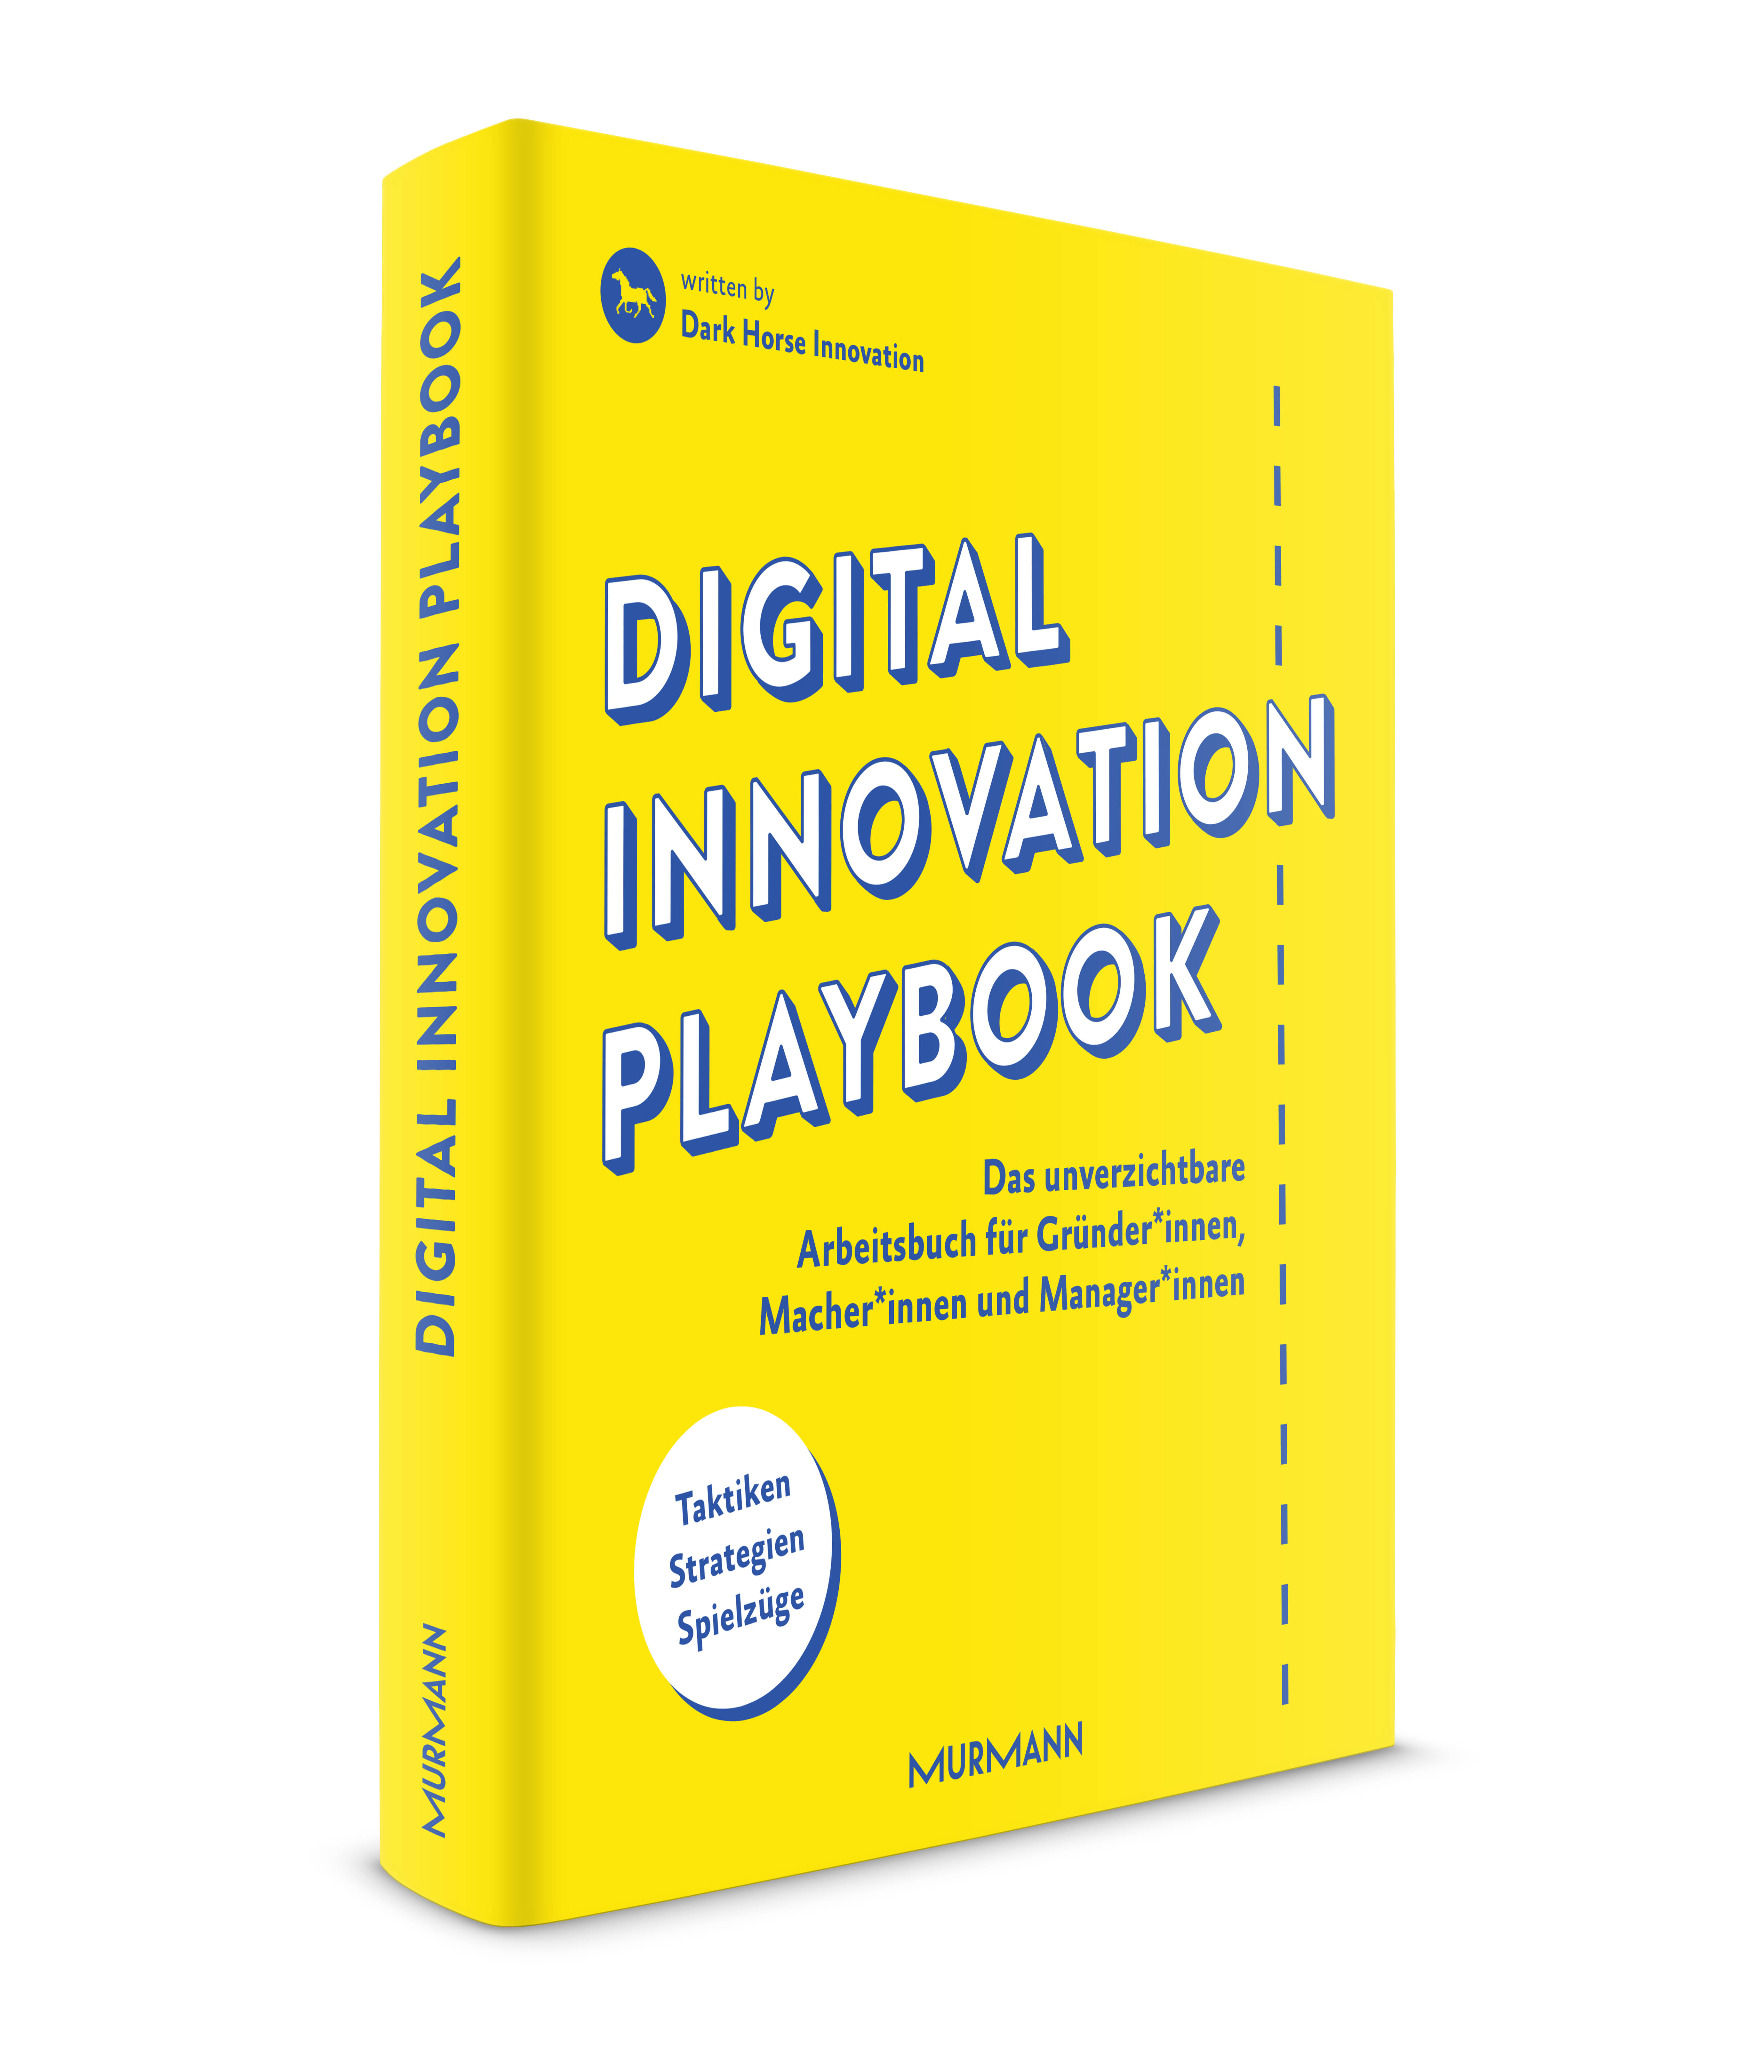 Digital Innovation Playbook / Dark Horse Innovation